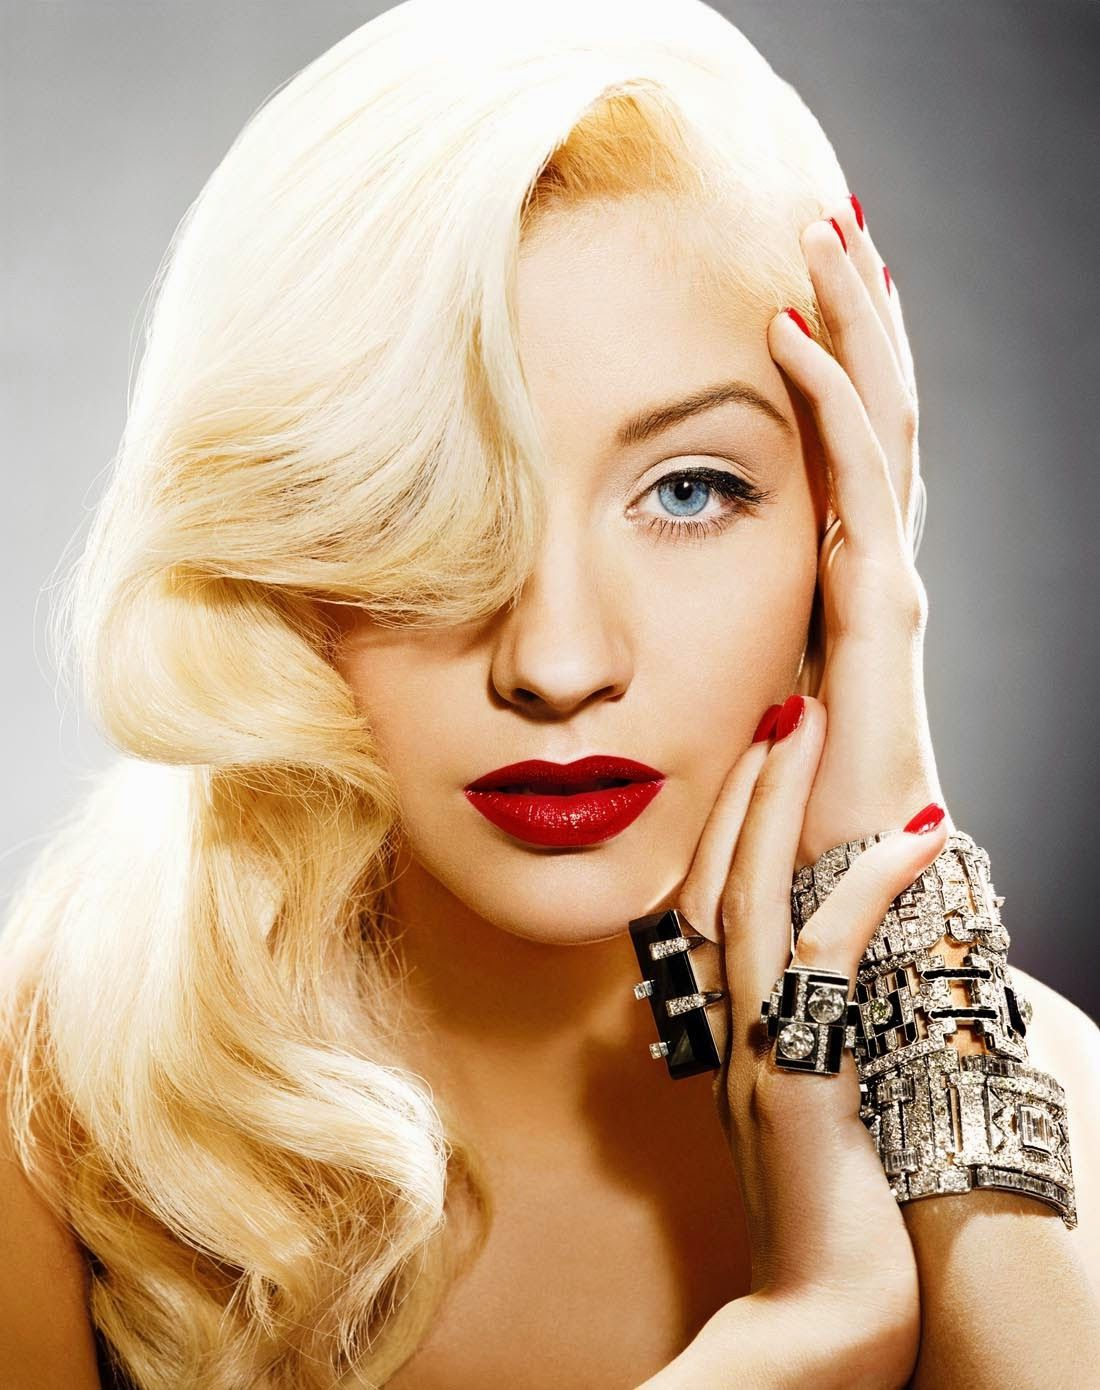 Aguilera Christina short 40s hairstyle pictures